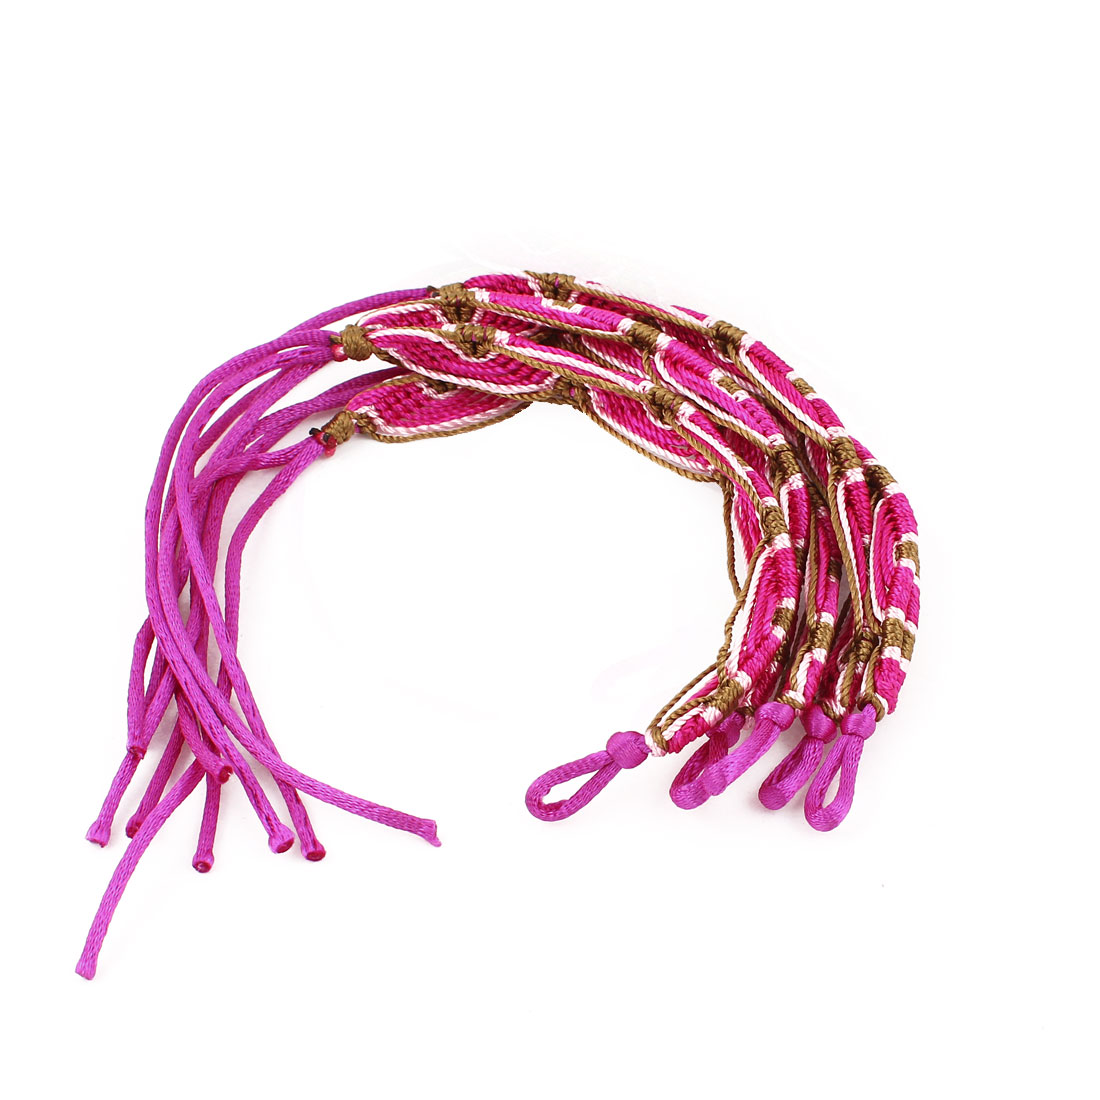 5 Pcs Fuchsia Nylon Cord Handwork Braided Wrist Decor Bracelet for Lady